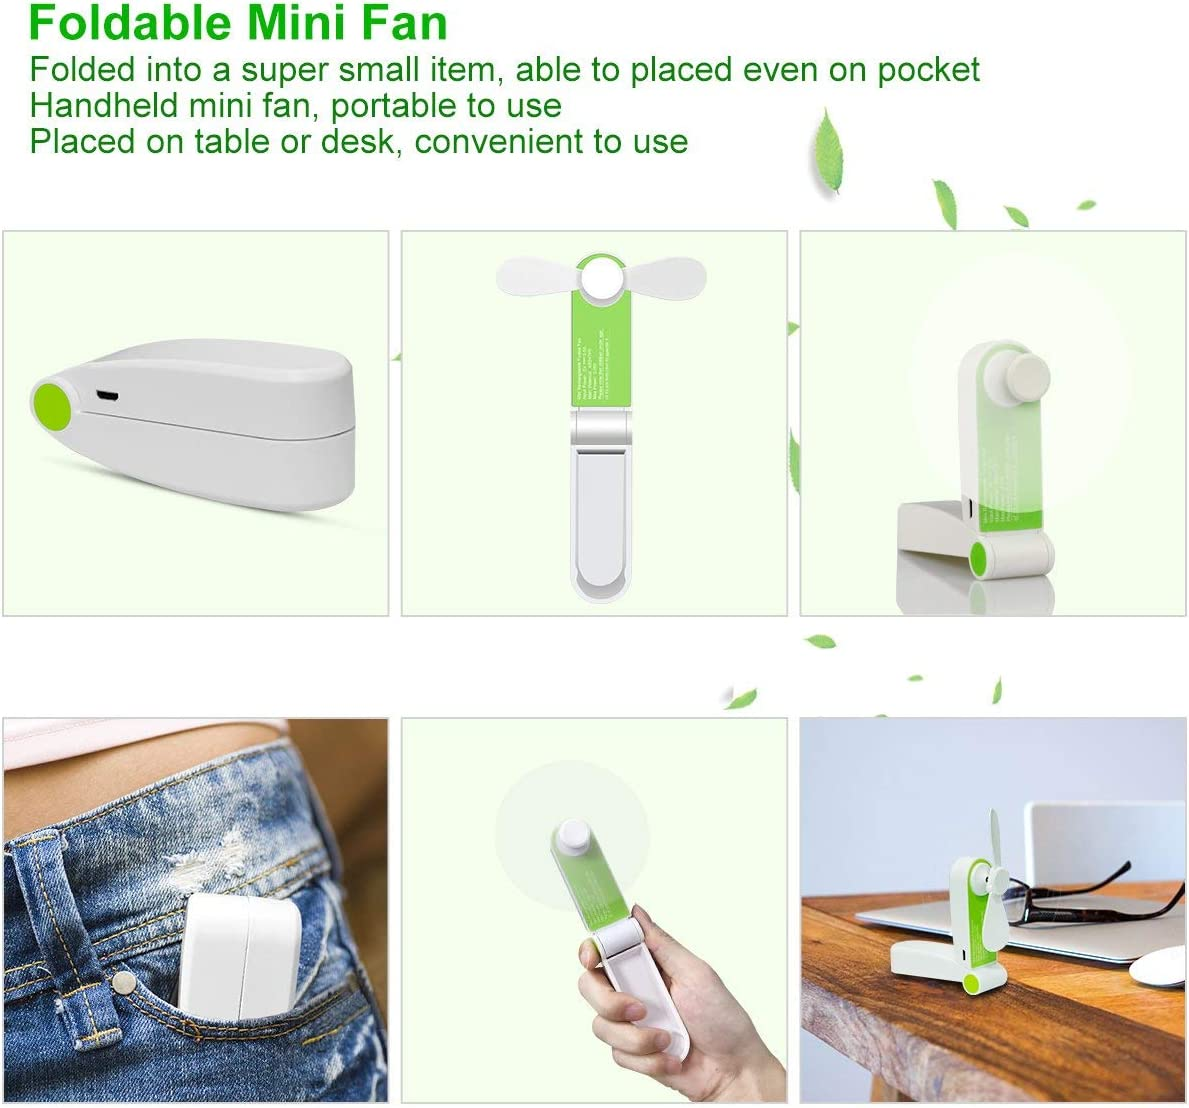 Foldable Handheld Mini Fan USB Rechageable Desktop Fan Portable Pocket Fan 2 Speeds Adjustable Personal Fan for Home Office Travel Outdoors